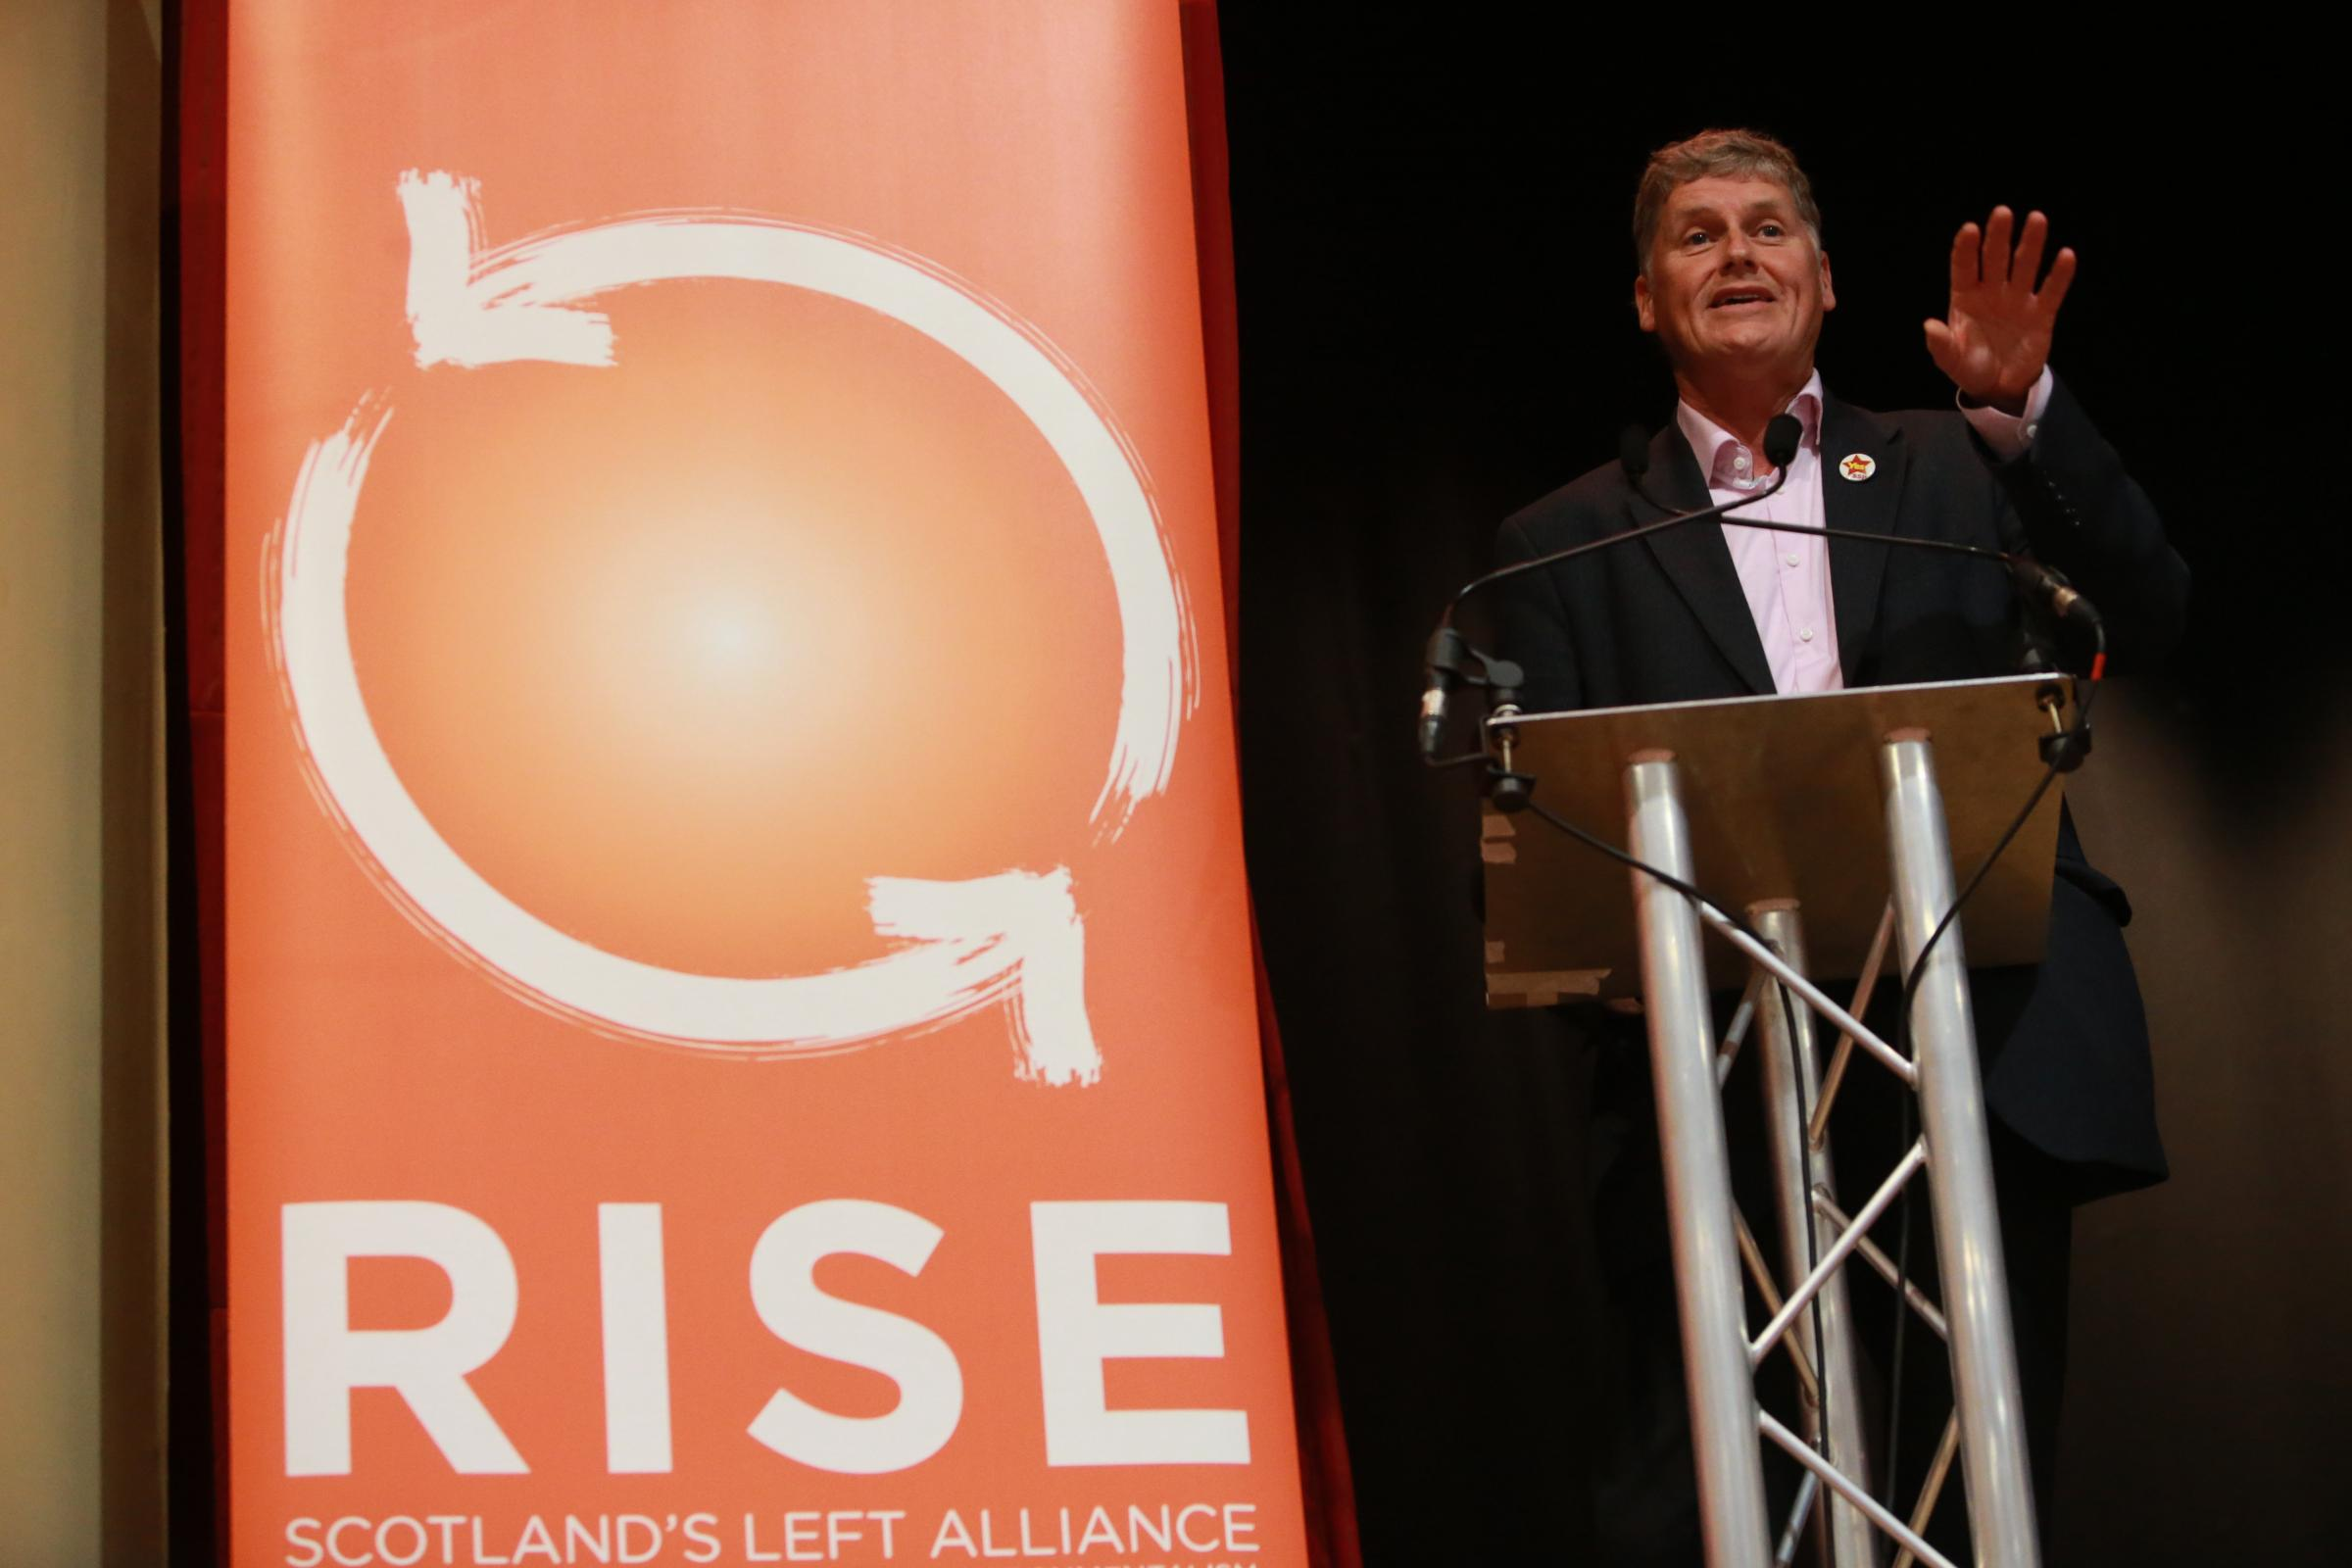 RISE 1 SA :  Launch of RISE, Scotland's Left Alliance at the Glasgow Marriott Hotell, Saturday 29th August 2015.  Colin Fox (SSP National Co-Spokesperson)  People gather at the Marriott Hotel in Glasgow as speakers Alan Bissett (Author), Jean Urquhart MSP